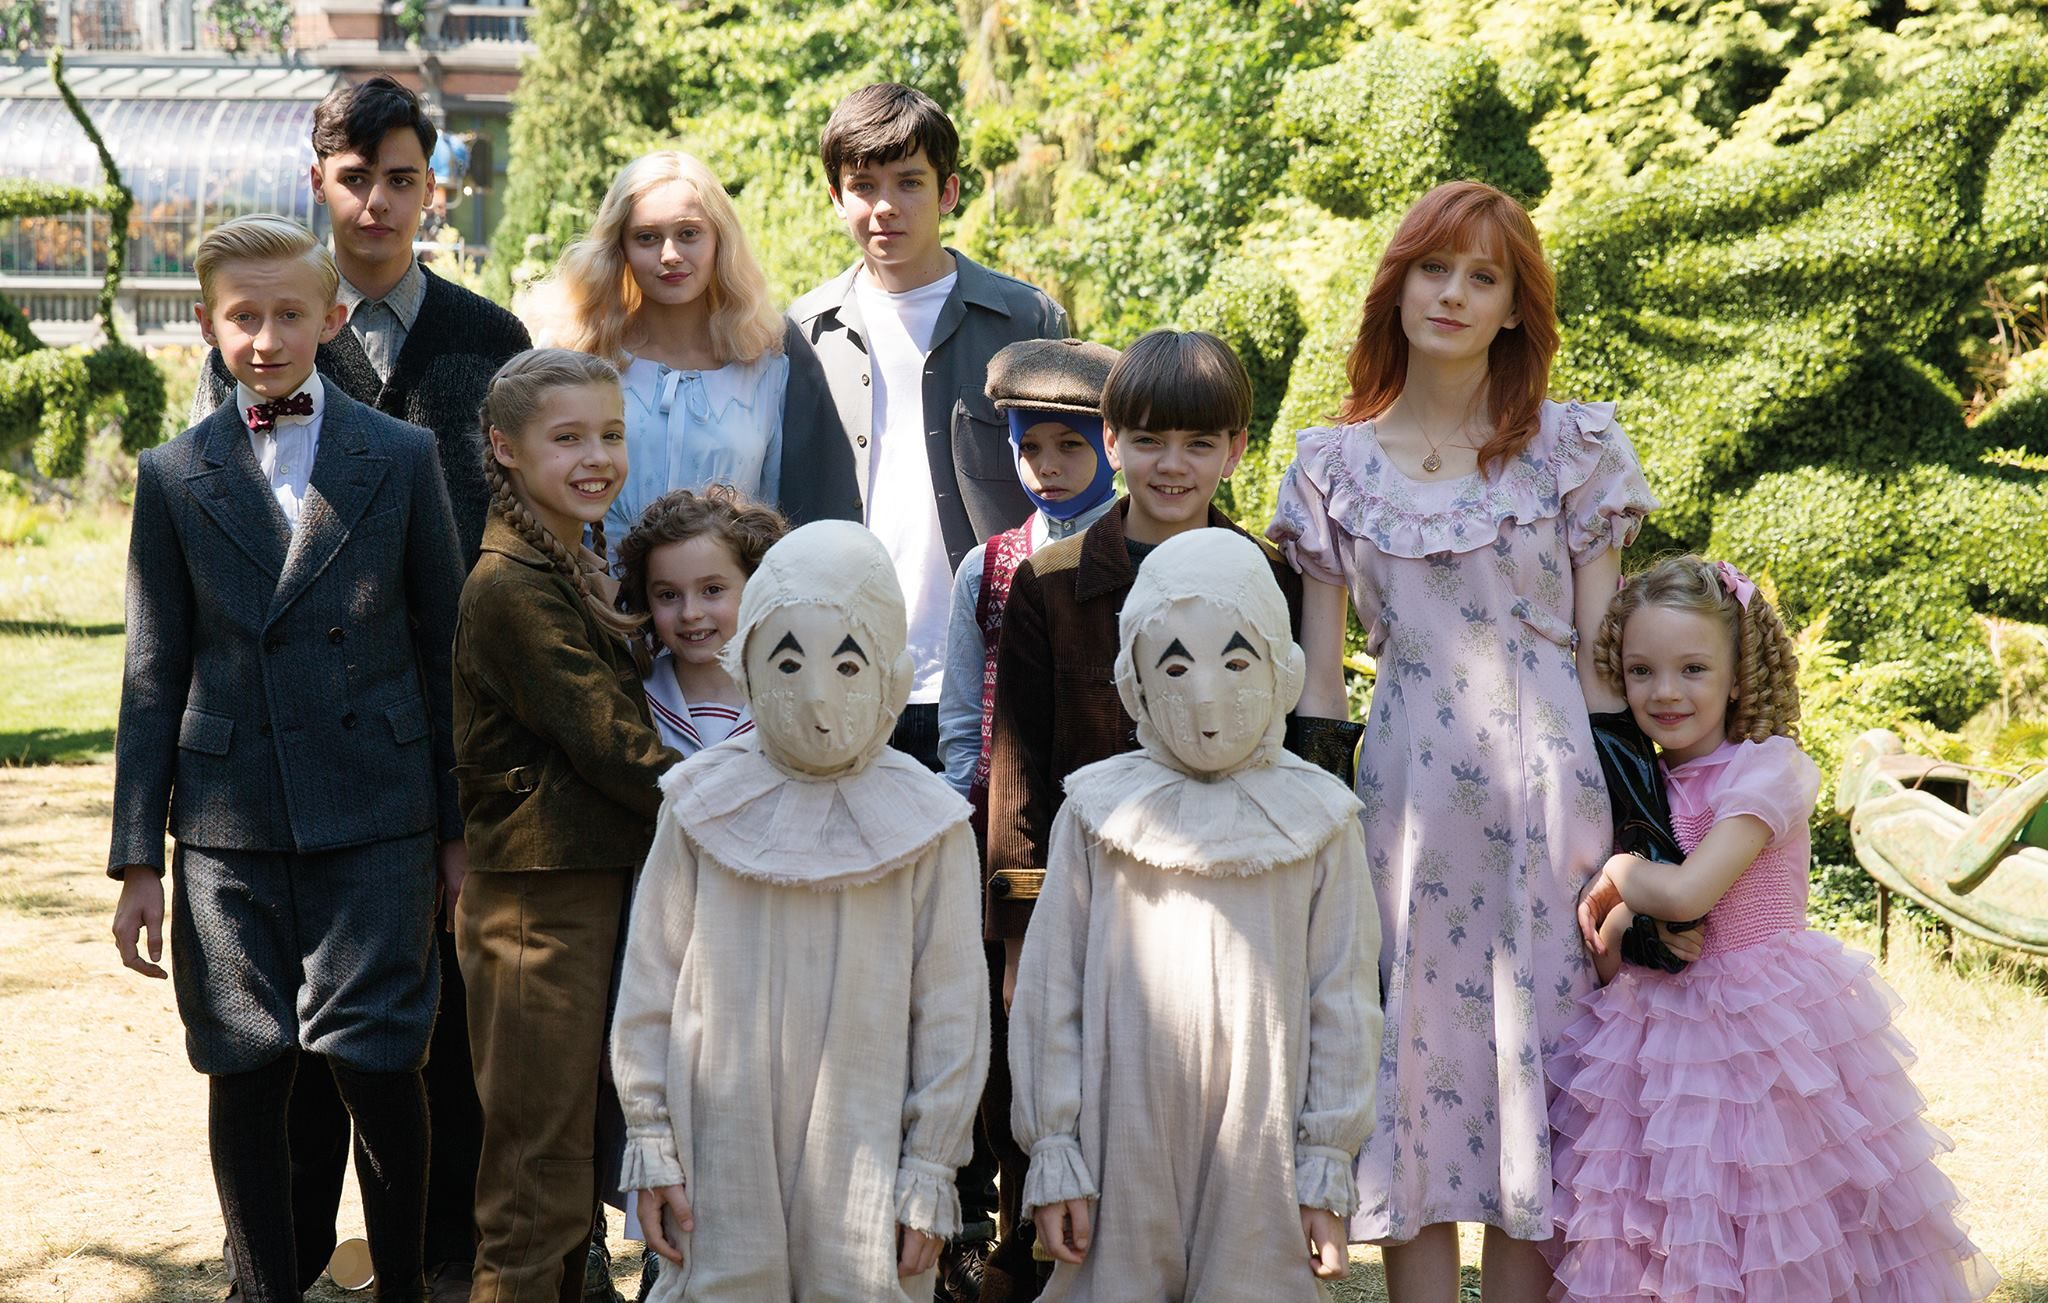 All Of The Peculiar Children In An Onset Photo Looking A Bit Less Peculi Miss Peregrines Home For Peculiar Miss Peregrine S Peculiar Children Peculiar Children